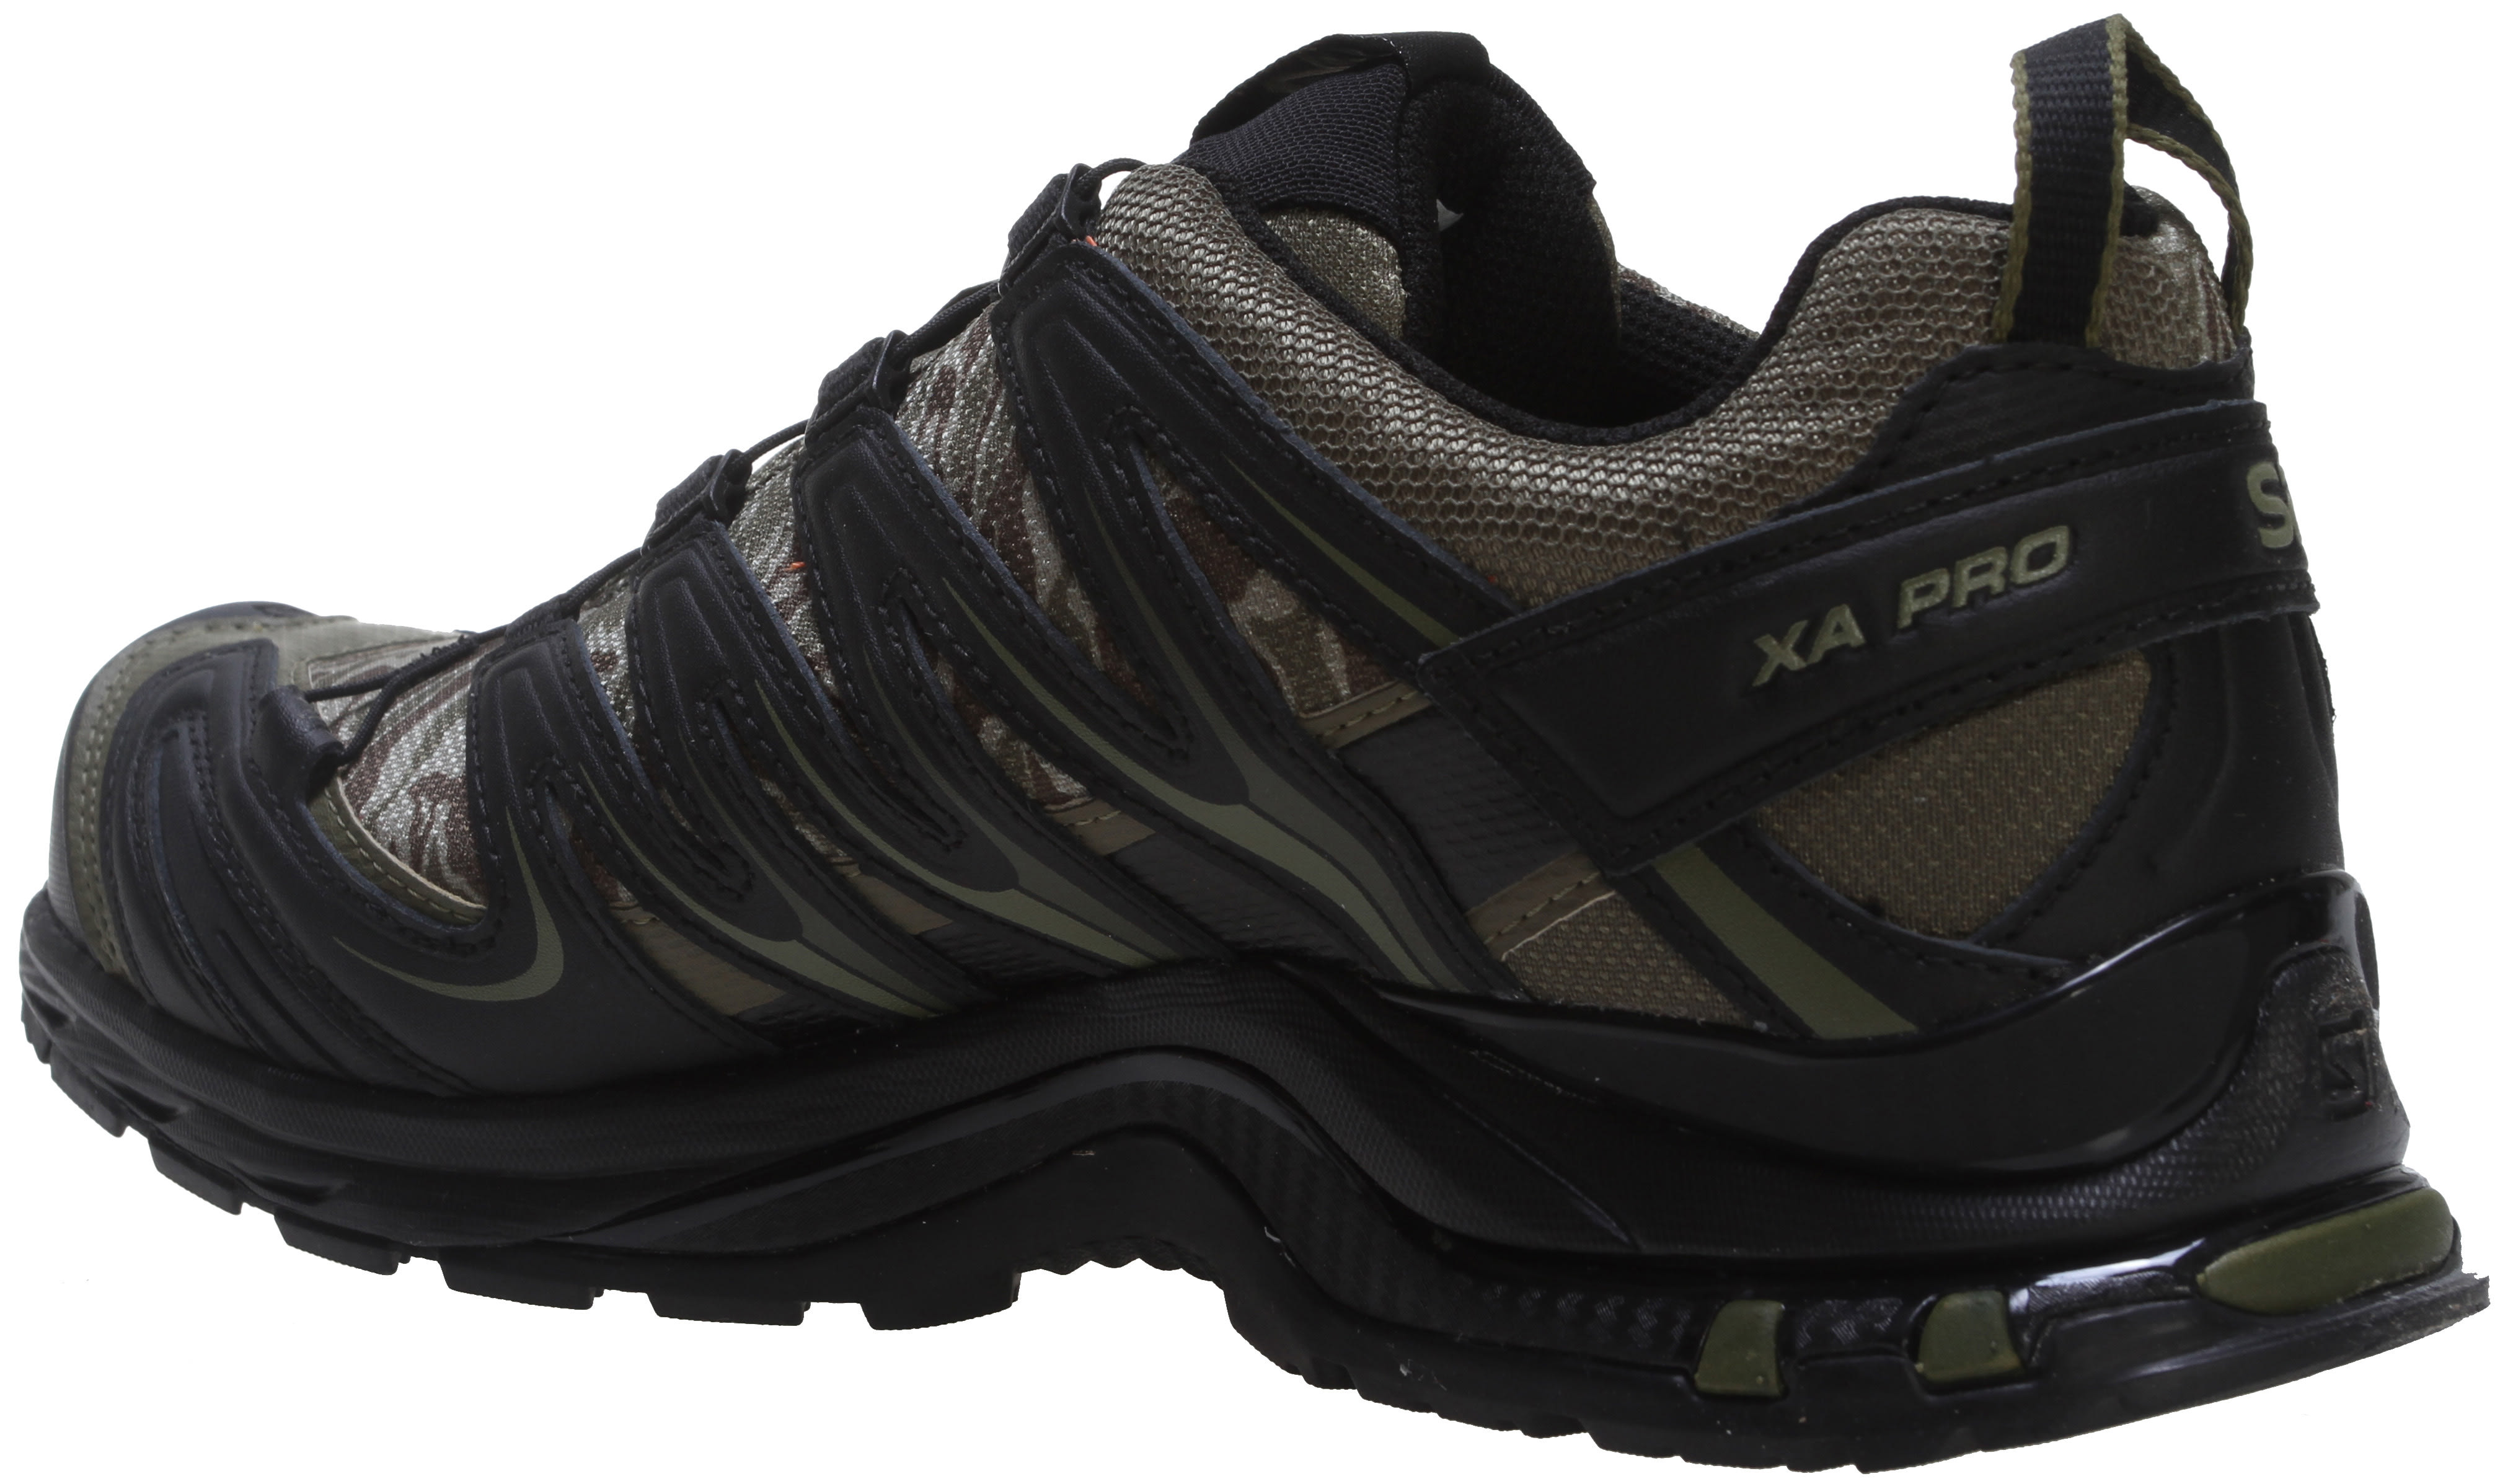 reputable site a5702 e02f0 Salomon XA Pro 3D GTX Trail Running Shoes - thumbnail 3